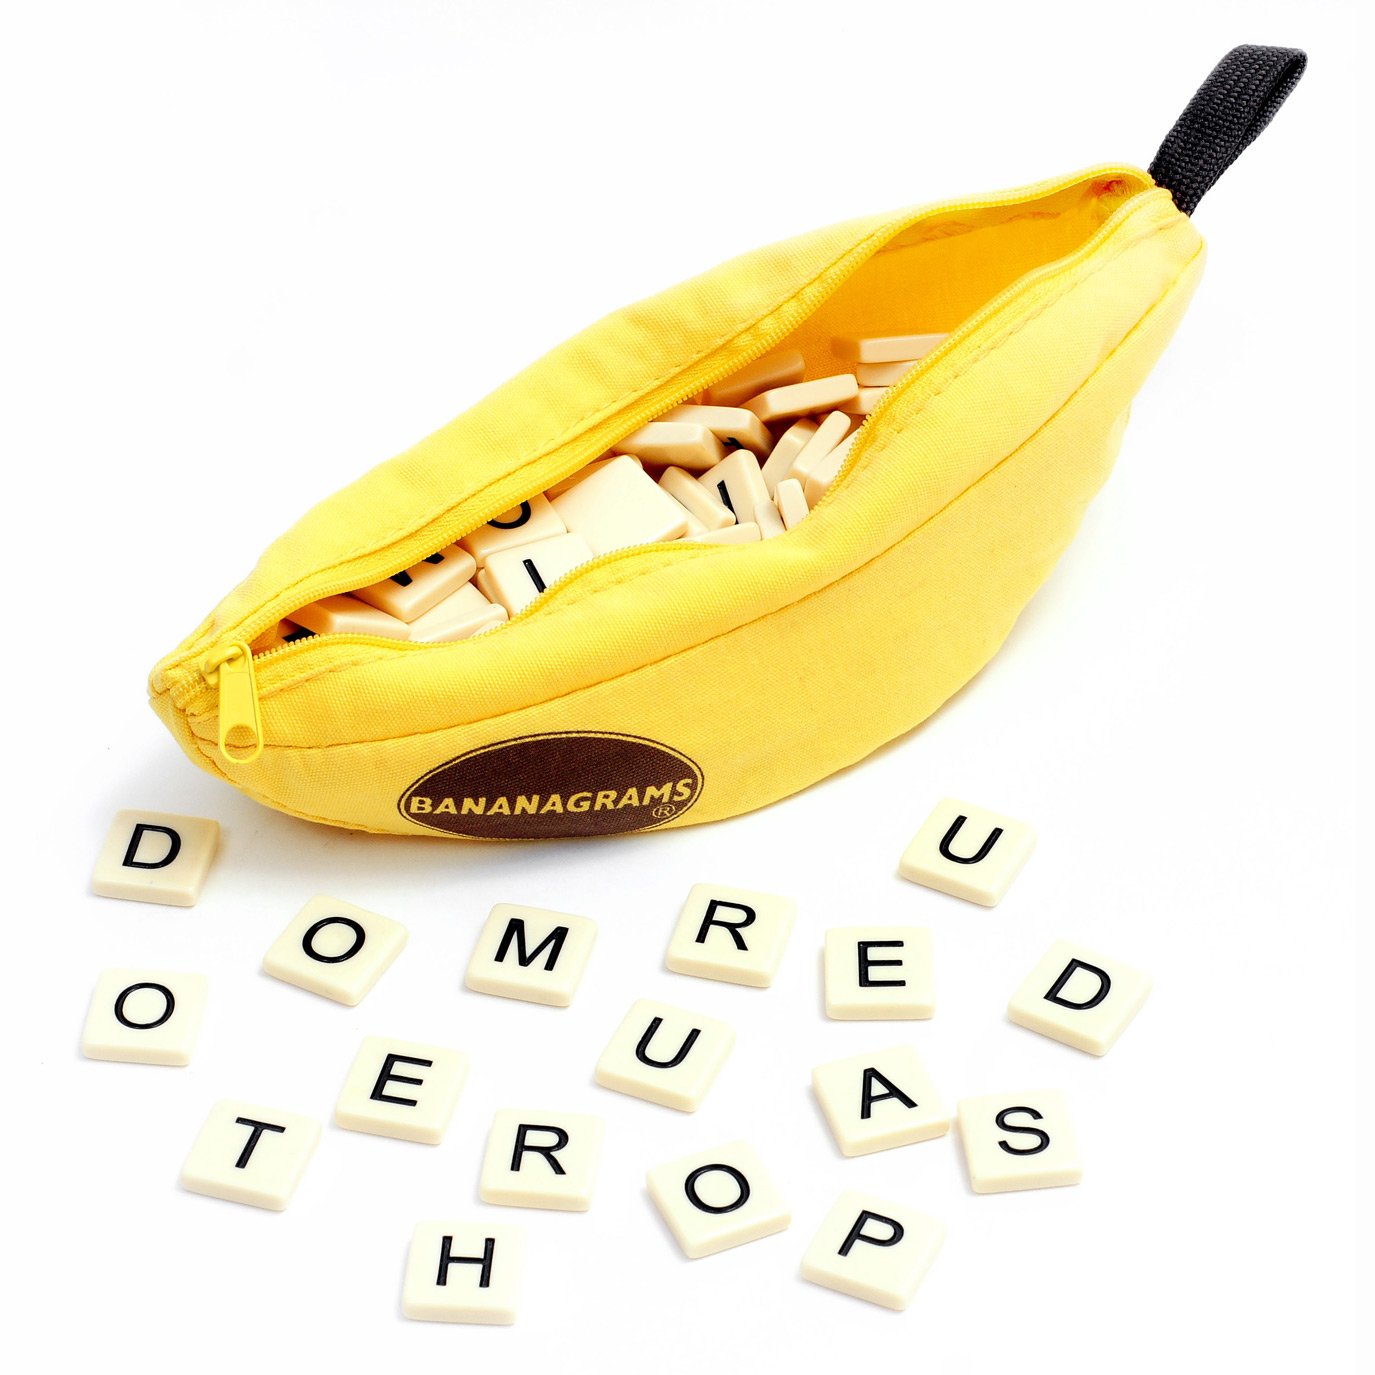 BANANAGRAMS® (R280)   THE ANAGRAM GAME THAT DRIVES YOU BANANAS!  Fast and frantic, players race against each other to build crossword grids. And it requires no pencil, paper, or board. In this addictive word game, speed wins, not points. You'll have a bunch of fun as you race to the finish by using all of your letter tiles first! Bananagrams® comes in a small portable banana-shaped pouch and is perfect for everyone; at home or on the go.  Bananagrams® can be played by 1-8 players and promotes important key developmental skills such as cognitive, perceptual, fine motor and social & emotional.  Suitable for ages 7 years and older.